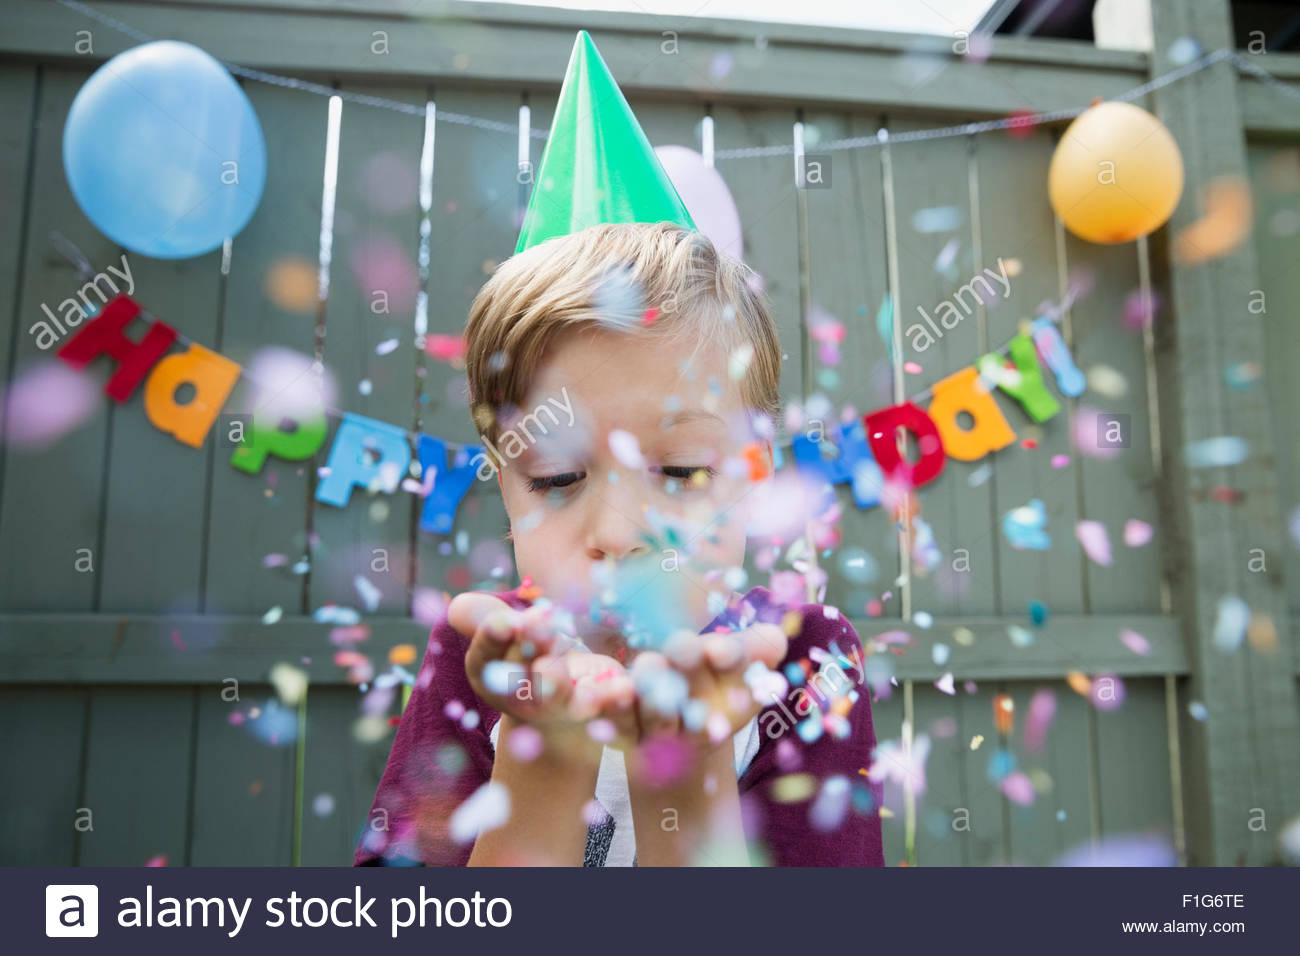 Boy blowing confetti wearing birthday party hat - Stock Image